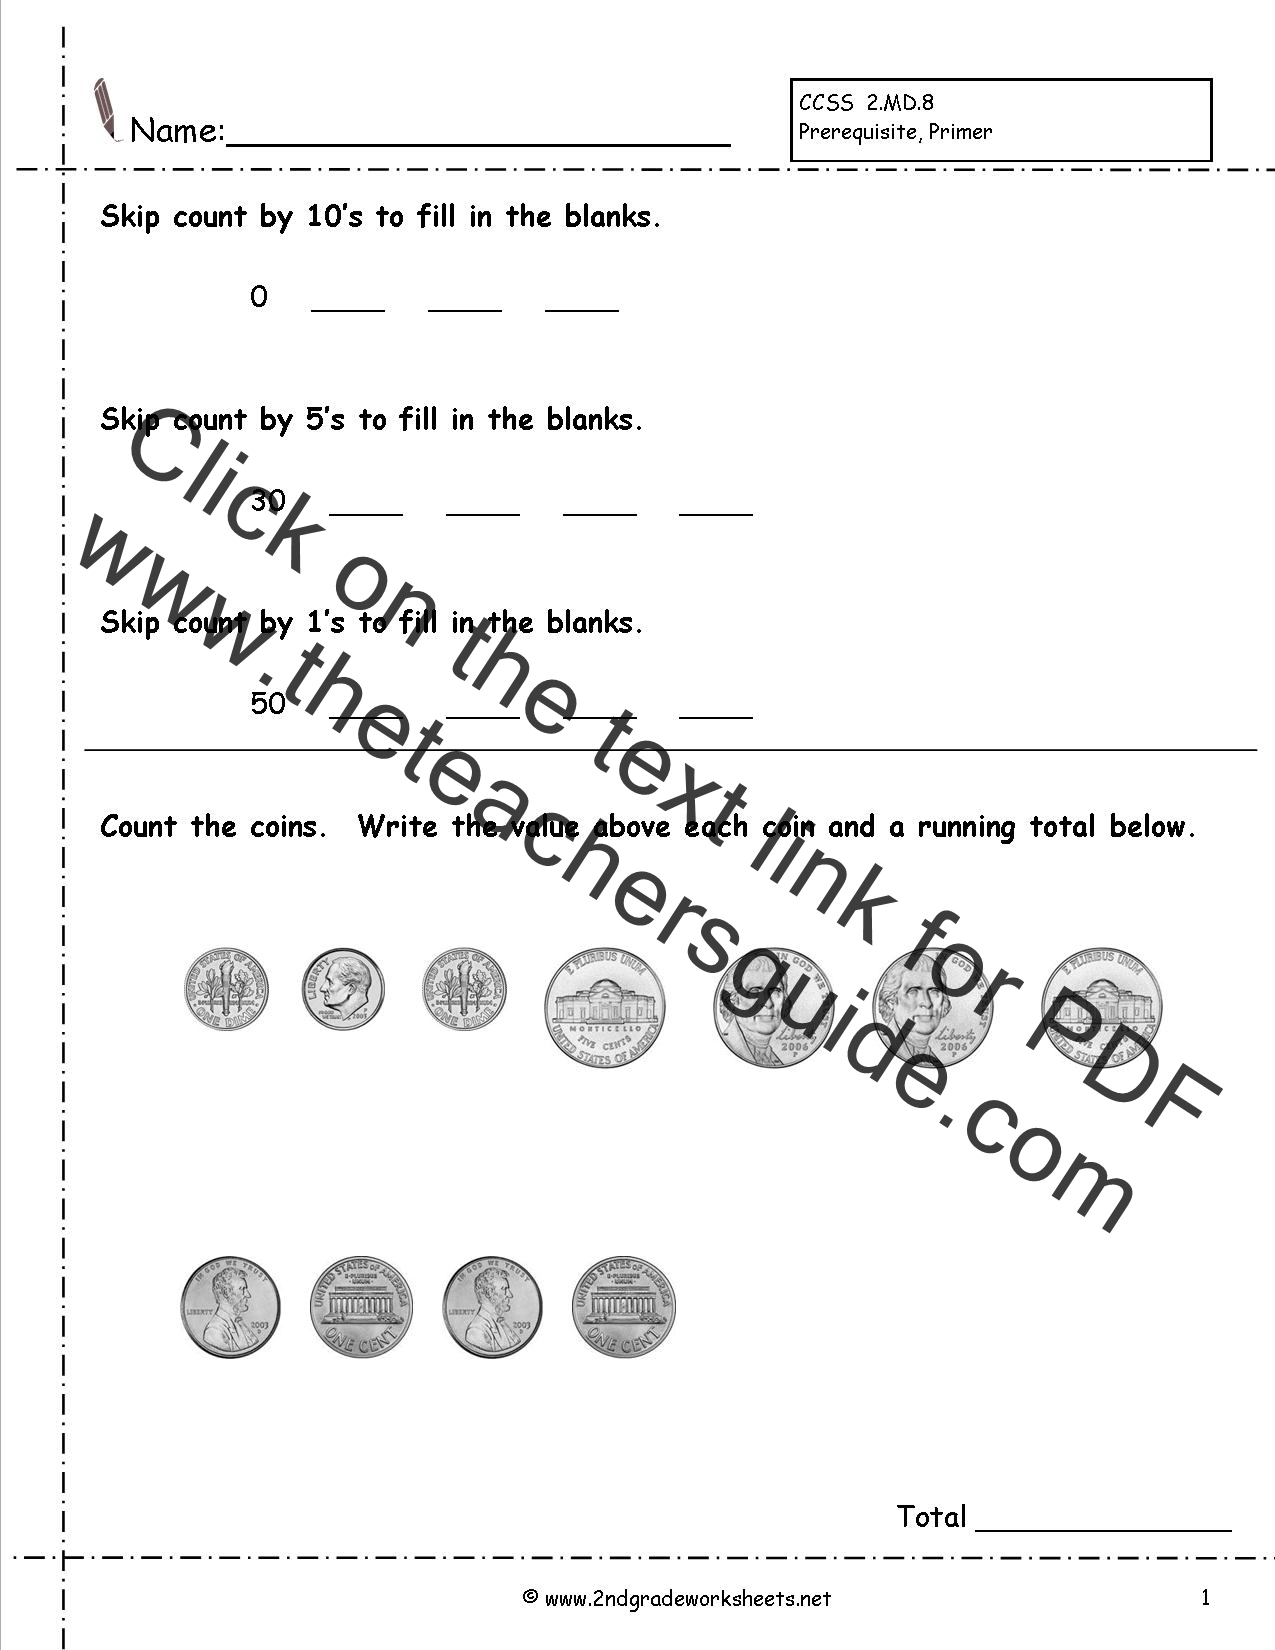 Ccss 2 8 Worksheets Counting Coins Worksheets Money Wordproblems Worksheets